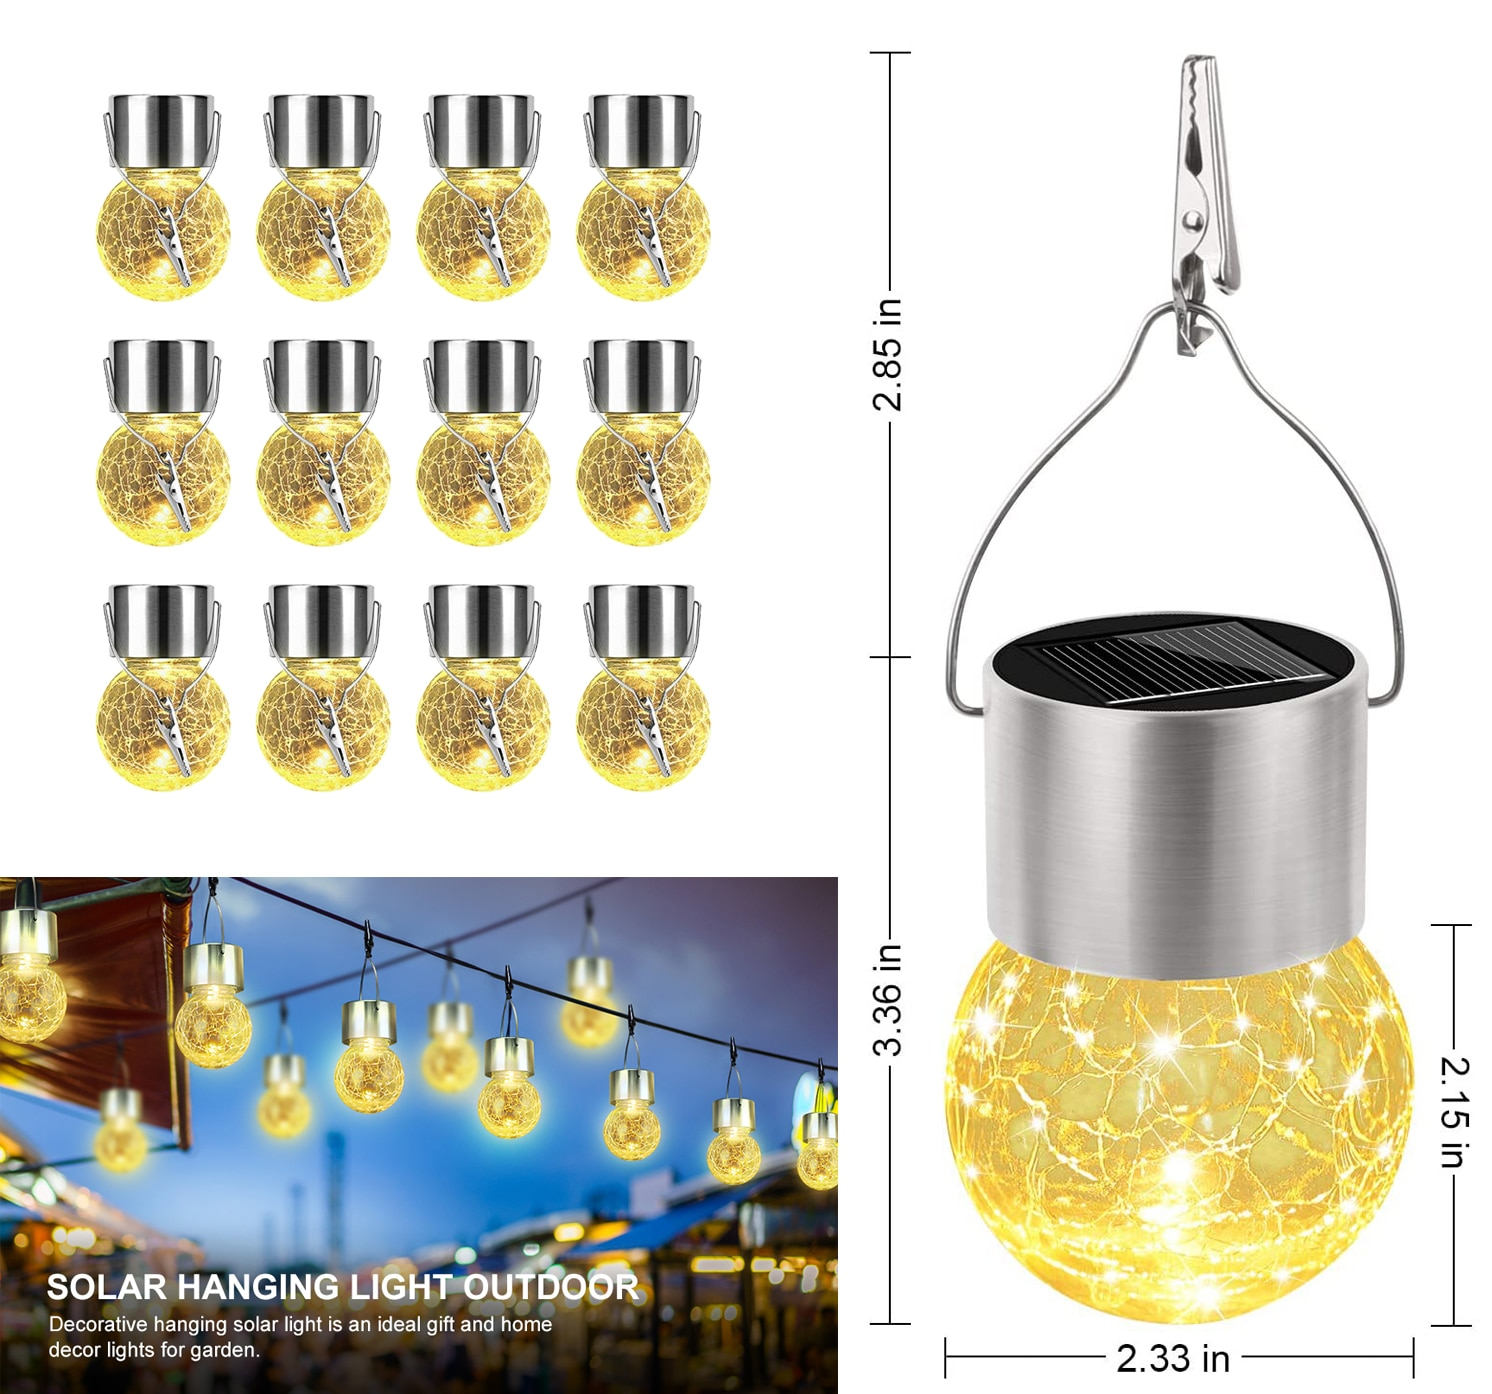 Outdoor Solar String Lights Cracked Glass LED Ball Lights Waterproof Hanging Light with Handle for Garden Yard Patio Decoration